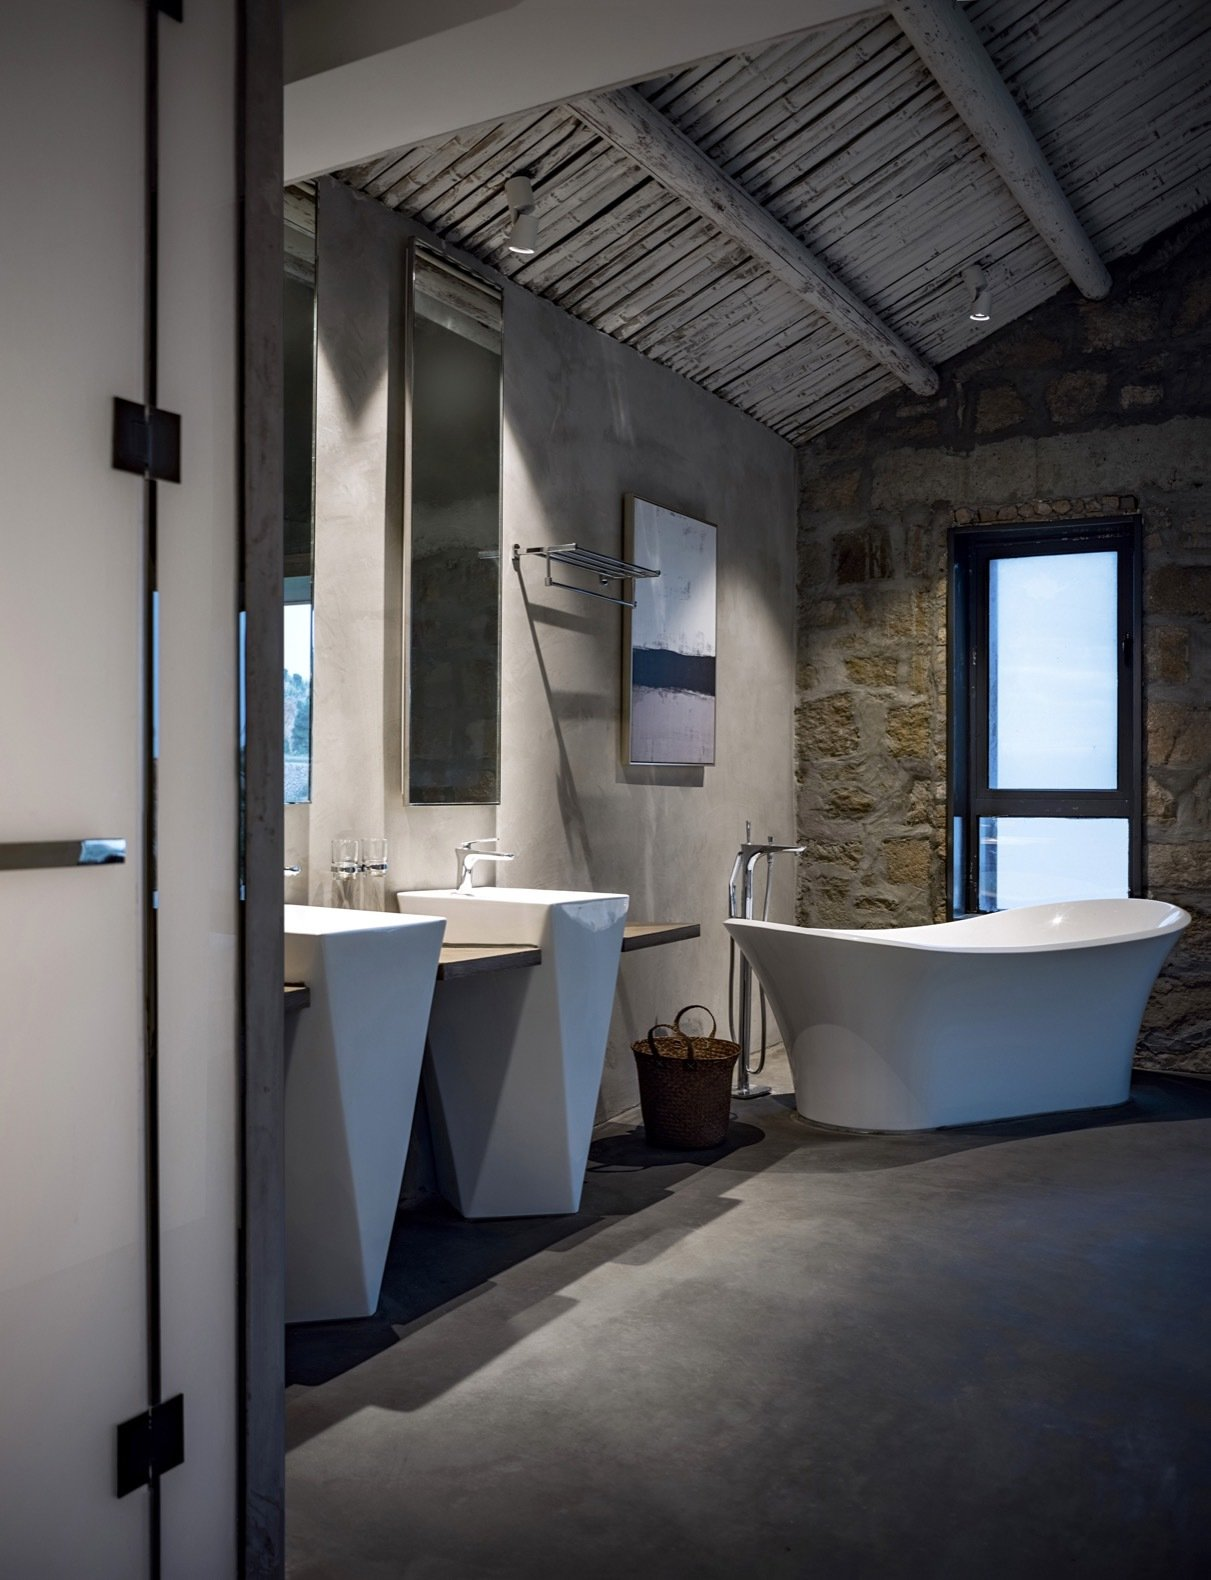 in-contrast-to-the-historic-setting-the-master-bathroom-is-outfitted-with-modern-fixtures-including-a-double-vanity-freestanding-tu